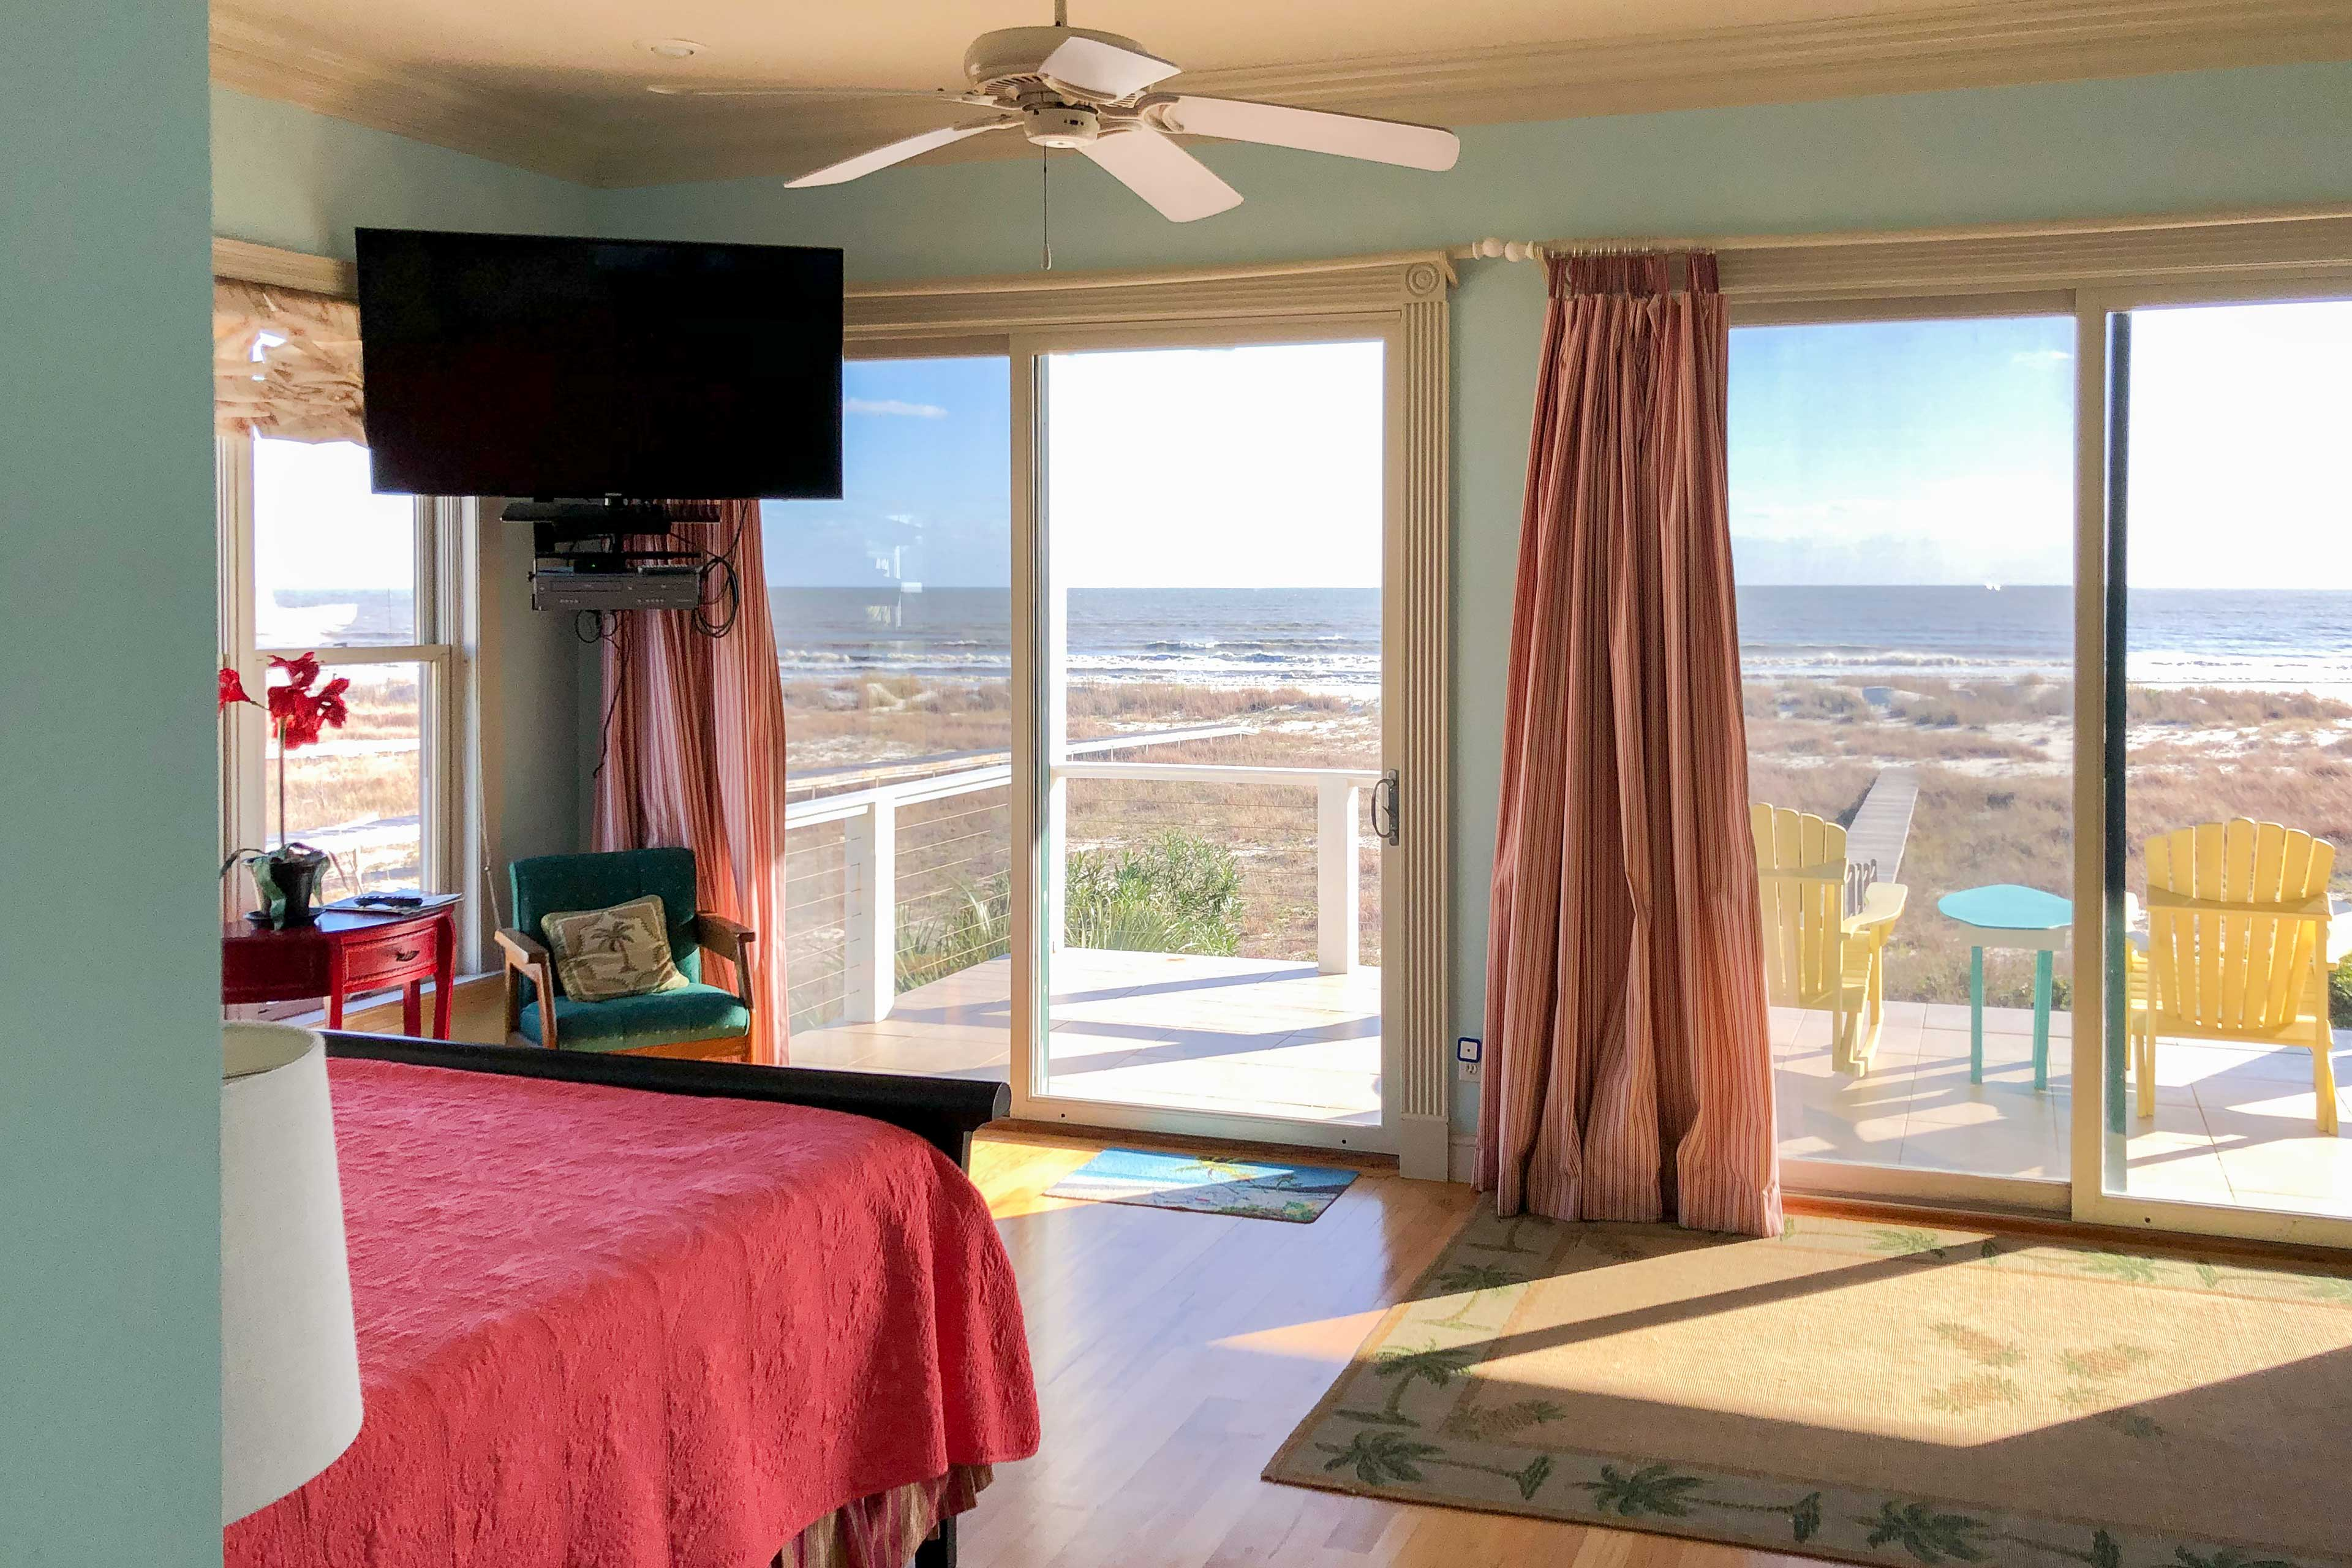 This master bedroom offers a king bed, along with views of the Gulf of Mexico.